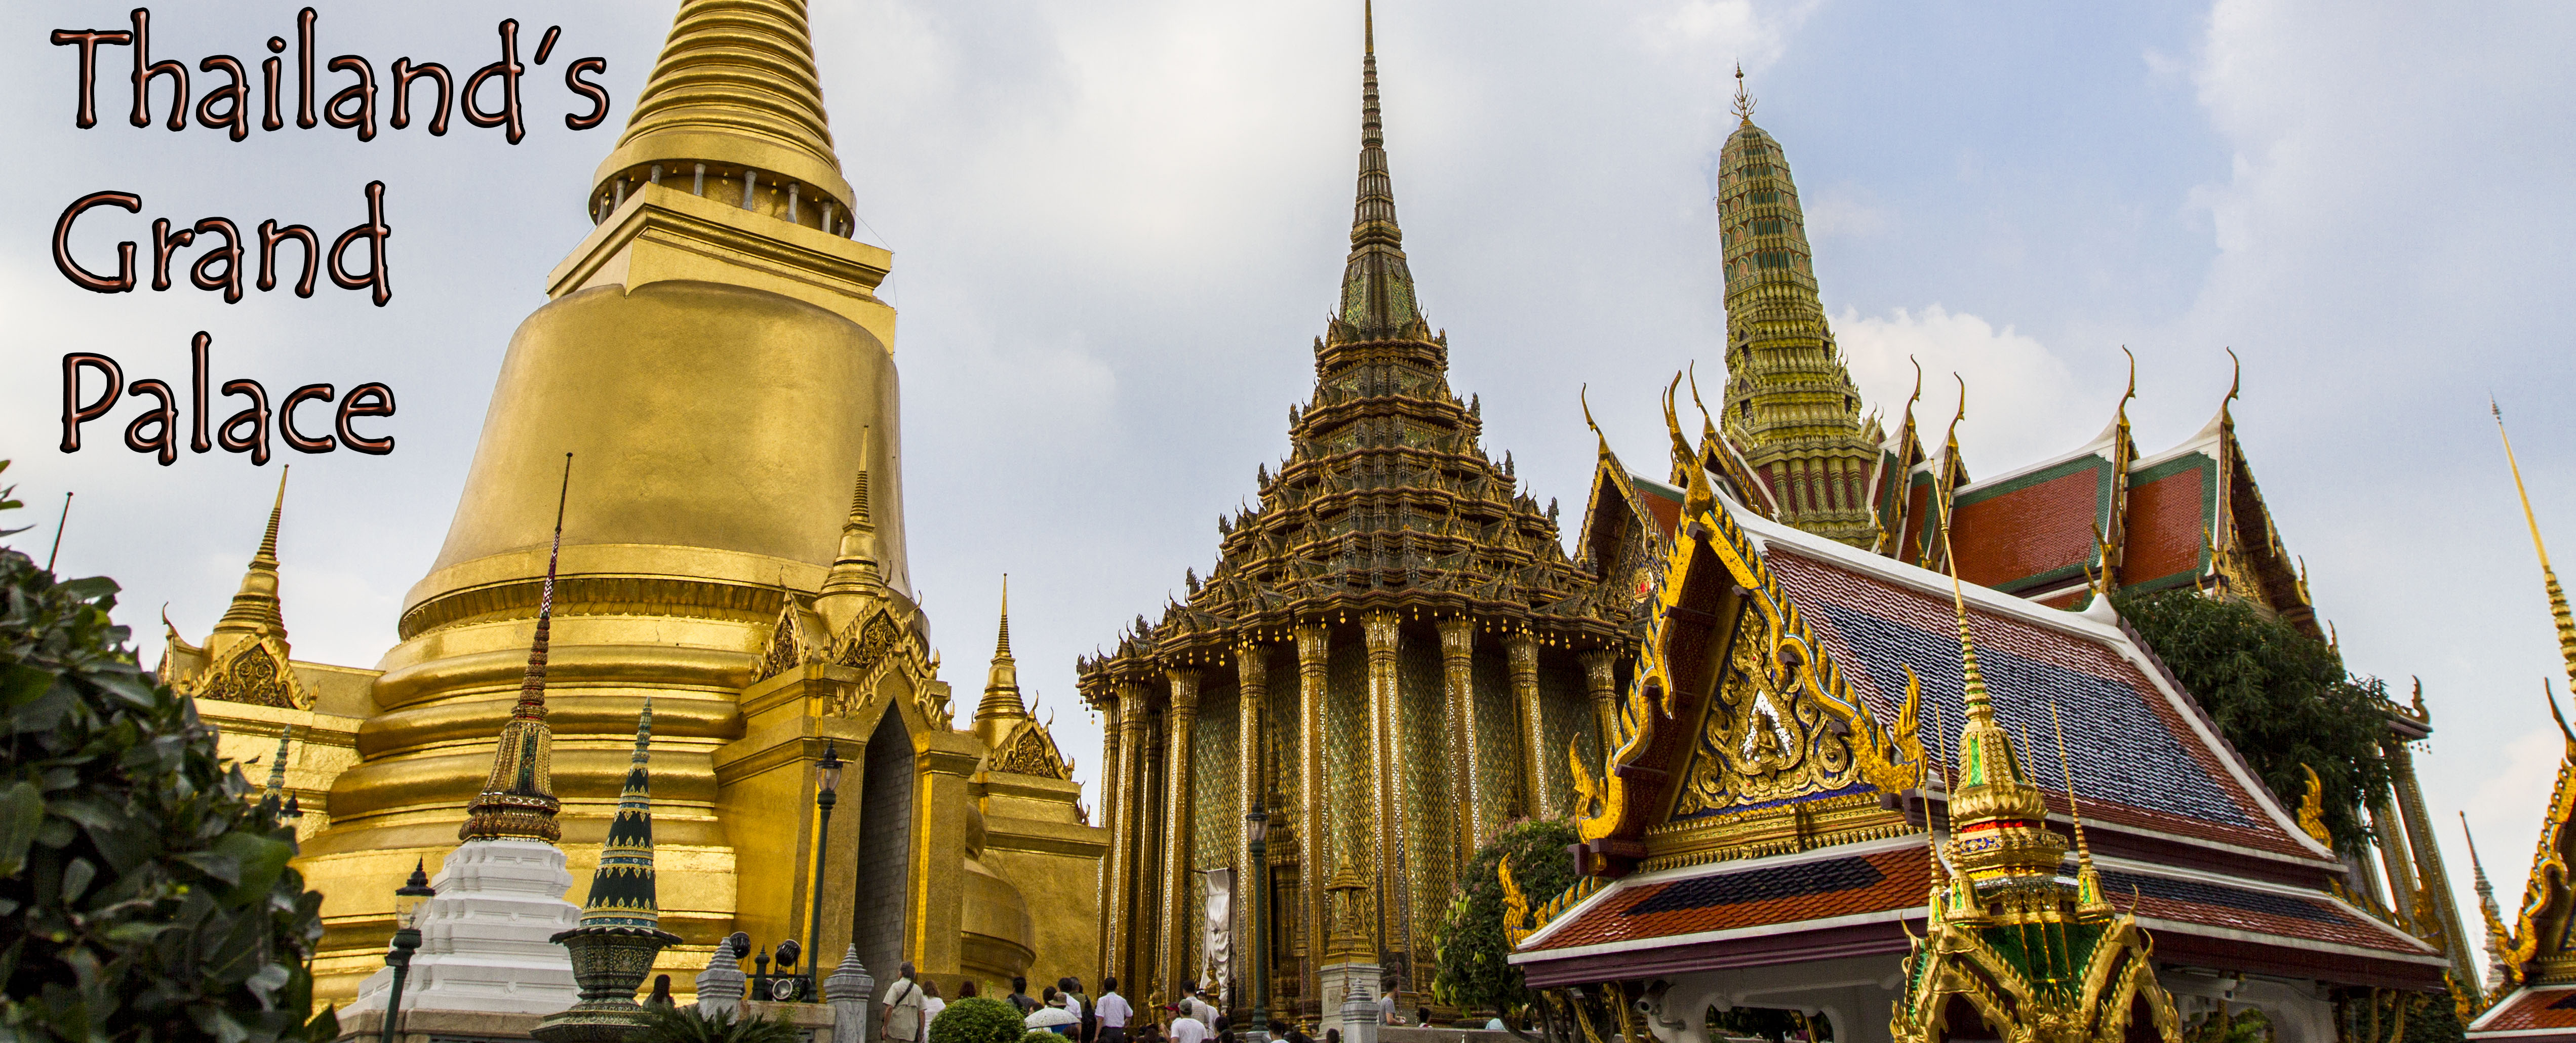 Thailands Grand Palace